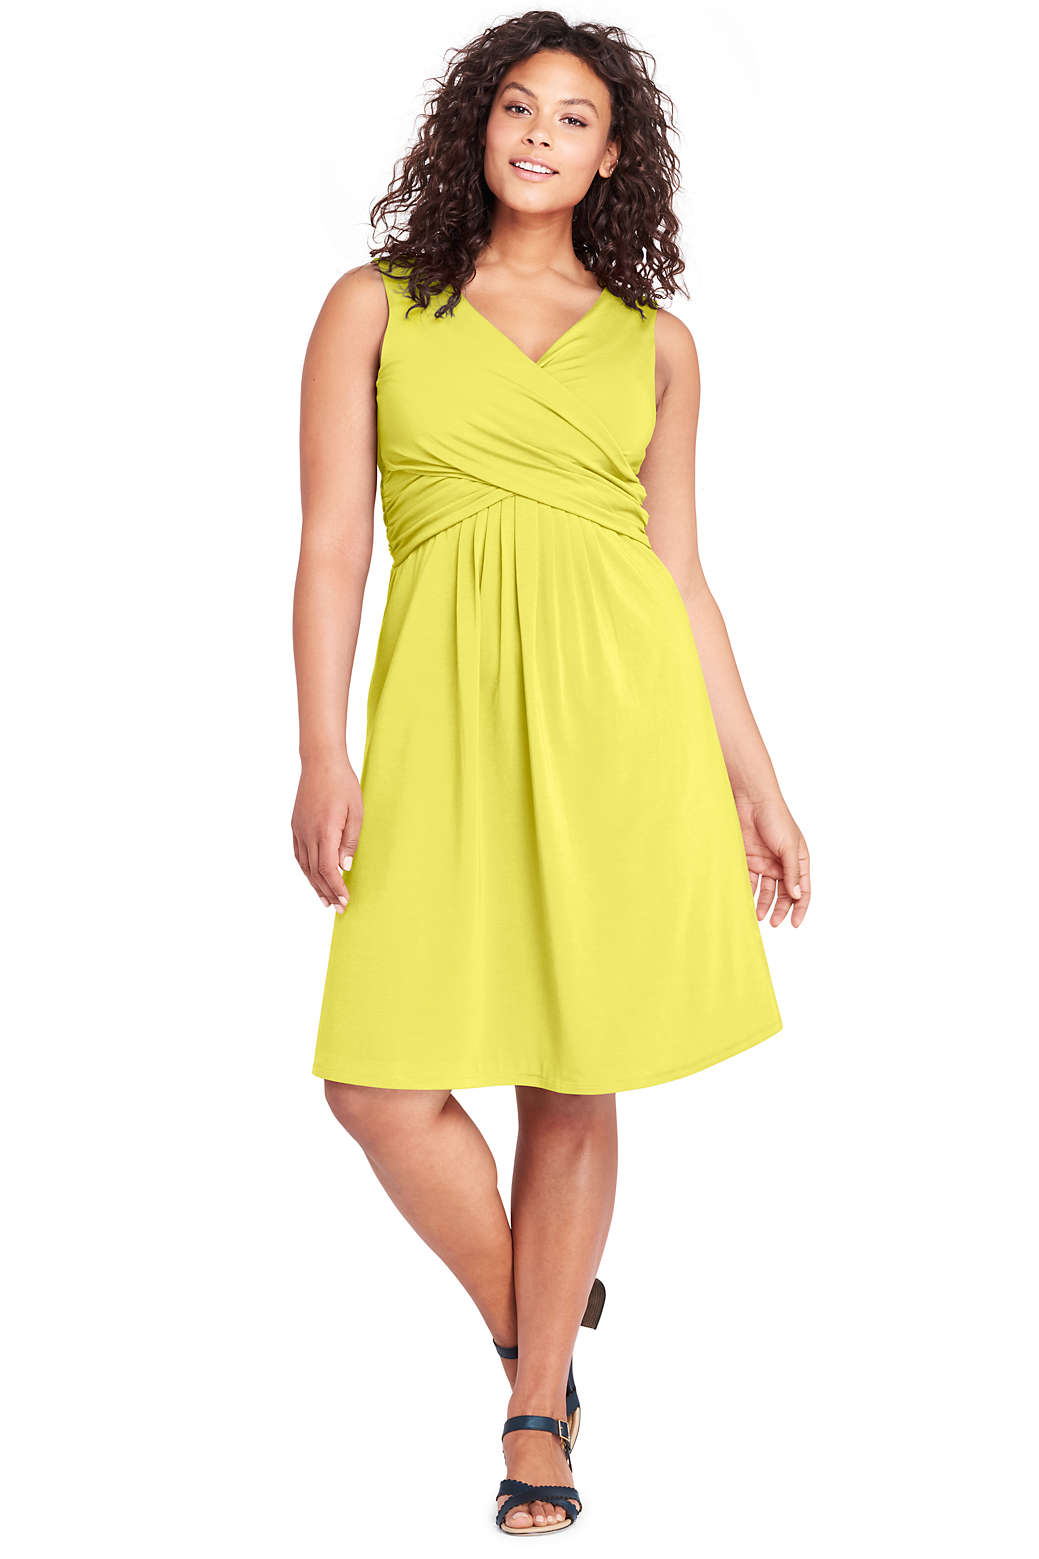 Women\'s Plus Size Sleeveless Fit and Flare Dress from Lands\' End